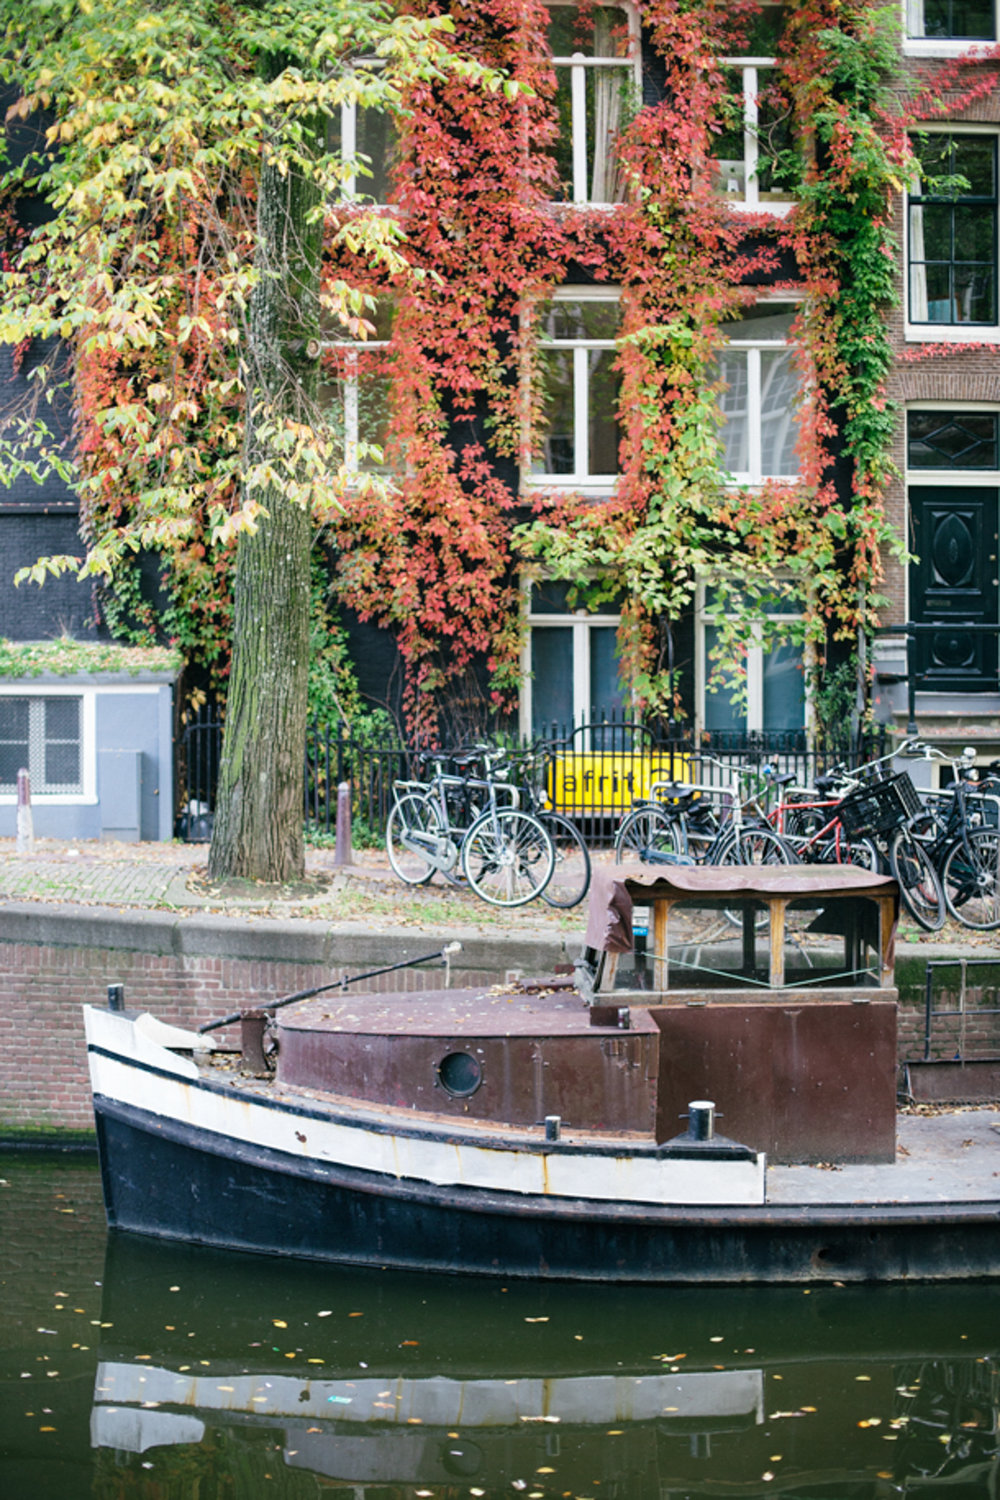 Heather Bullard | Amsterdam